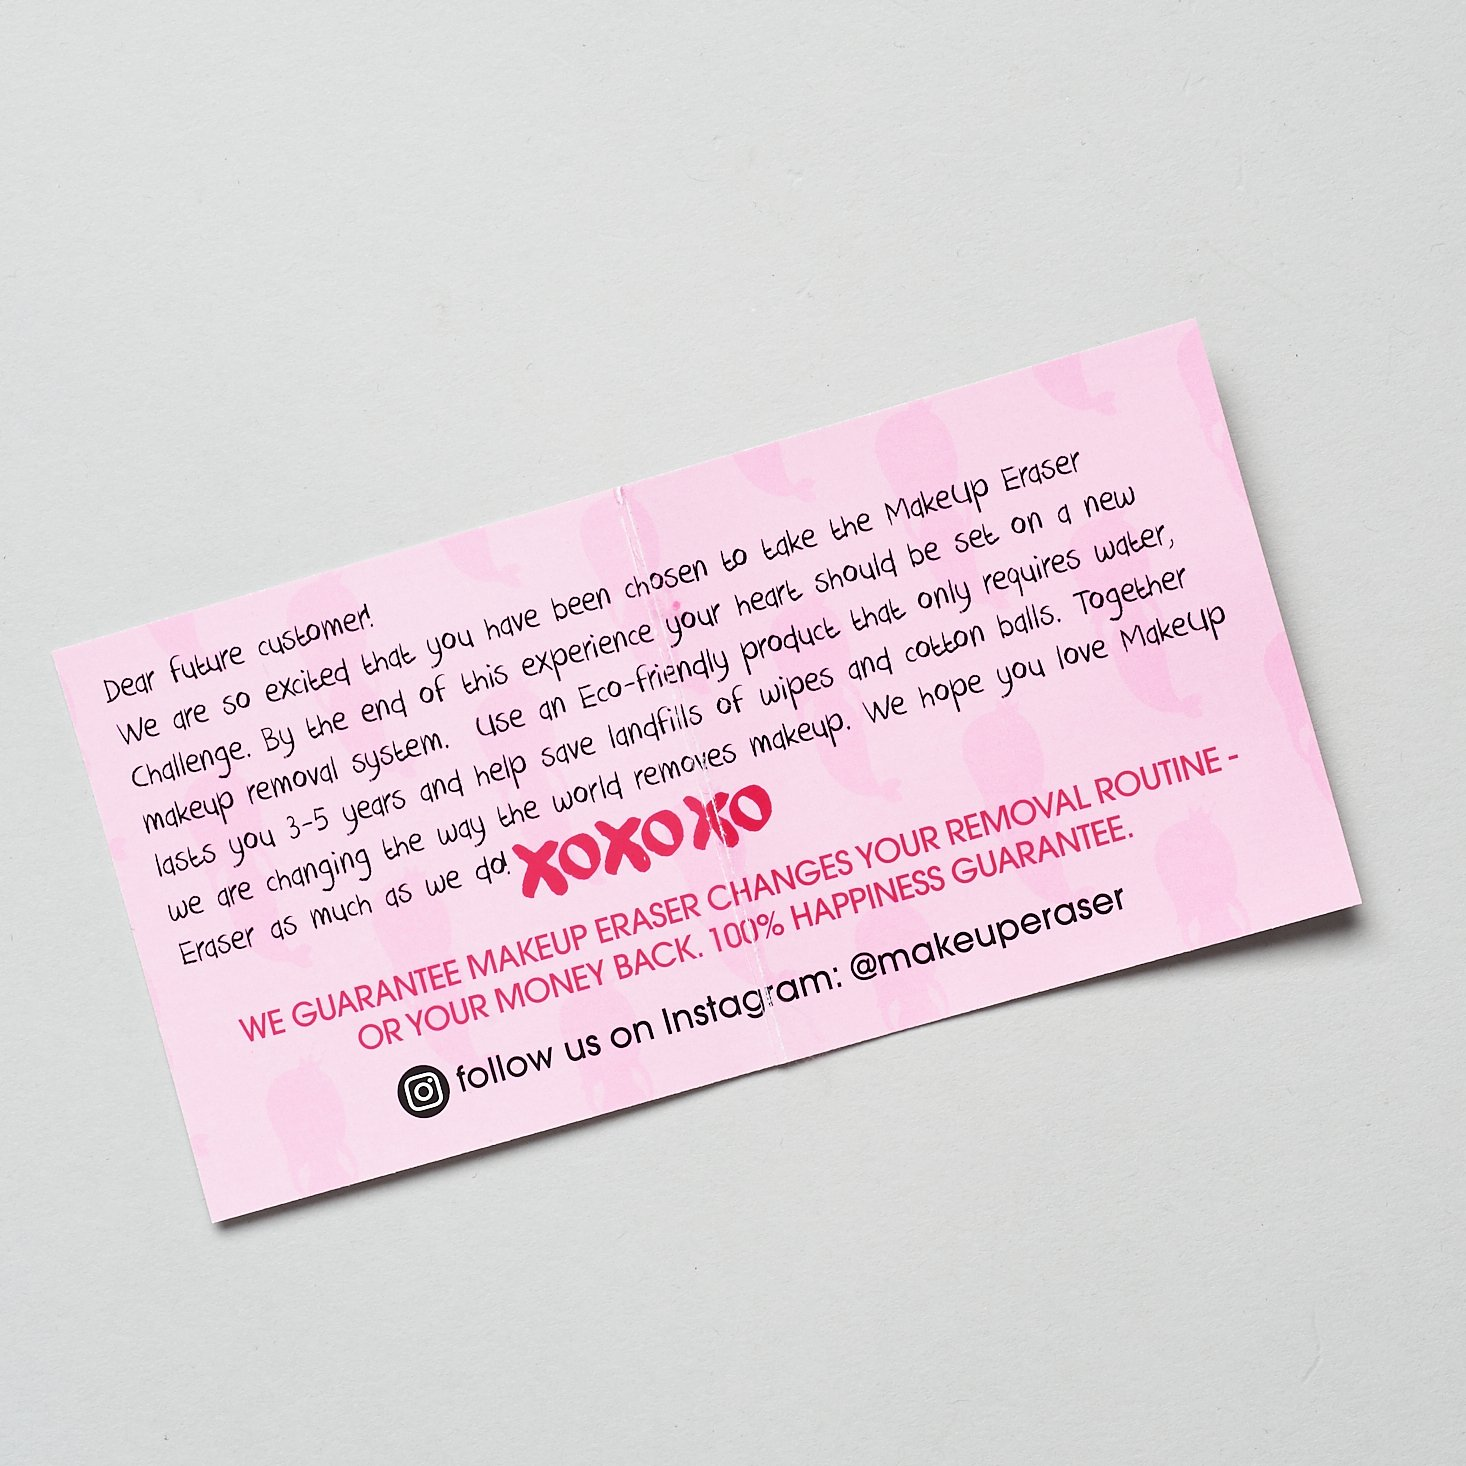 note from makeup eraser explaining eco-friendliness and money back guarantee